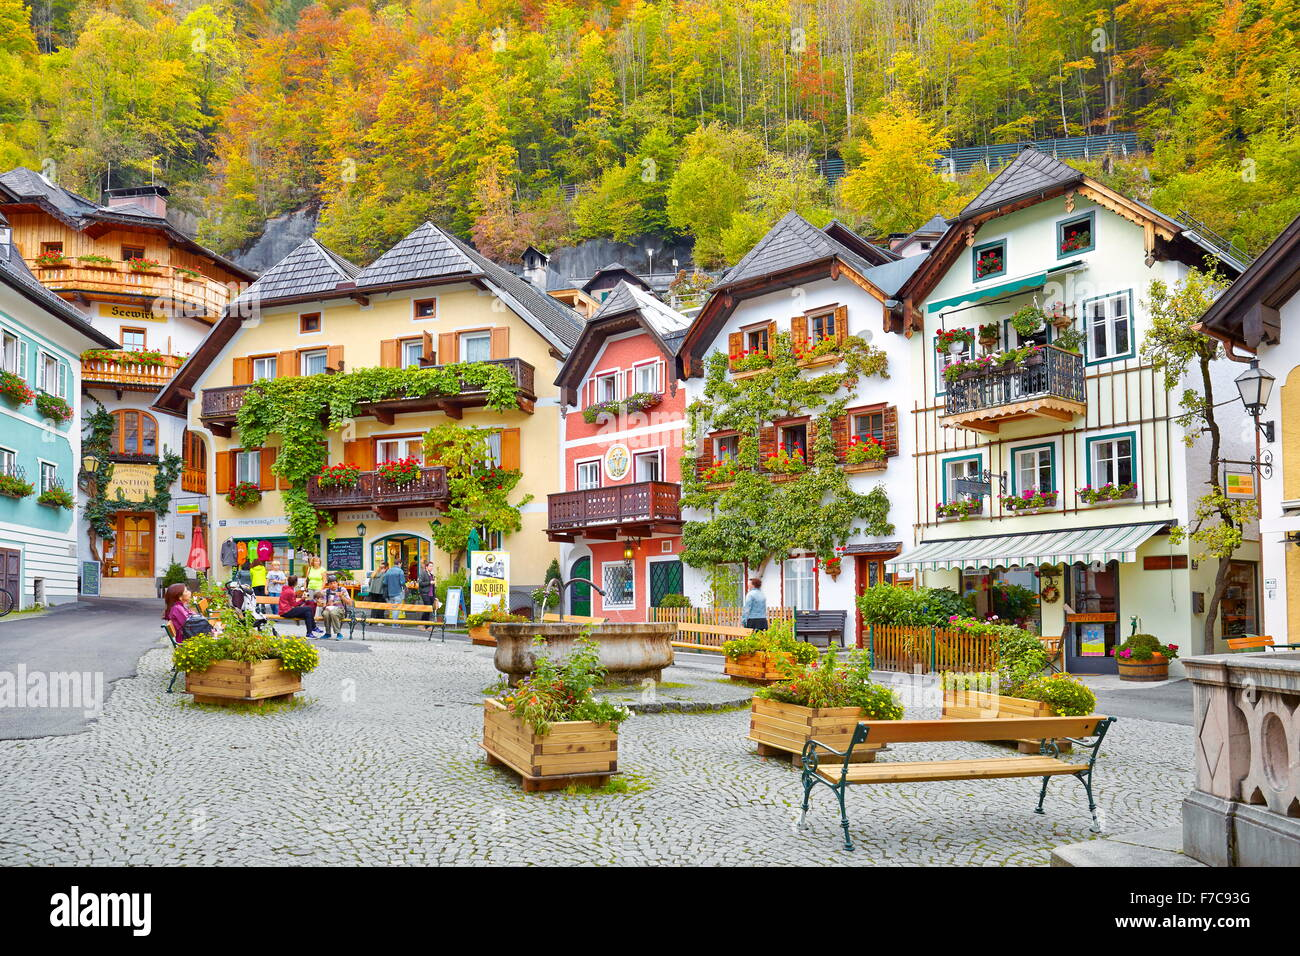 Colorful houses, Hallstatt village, Salzkammergut, Austria - Stock Image